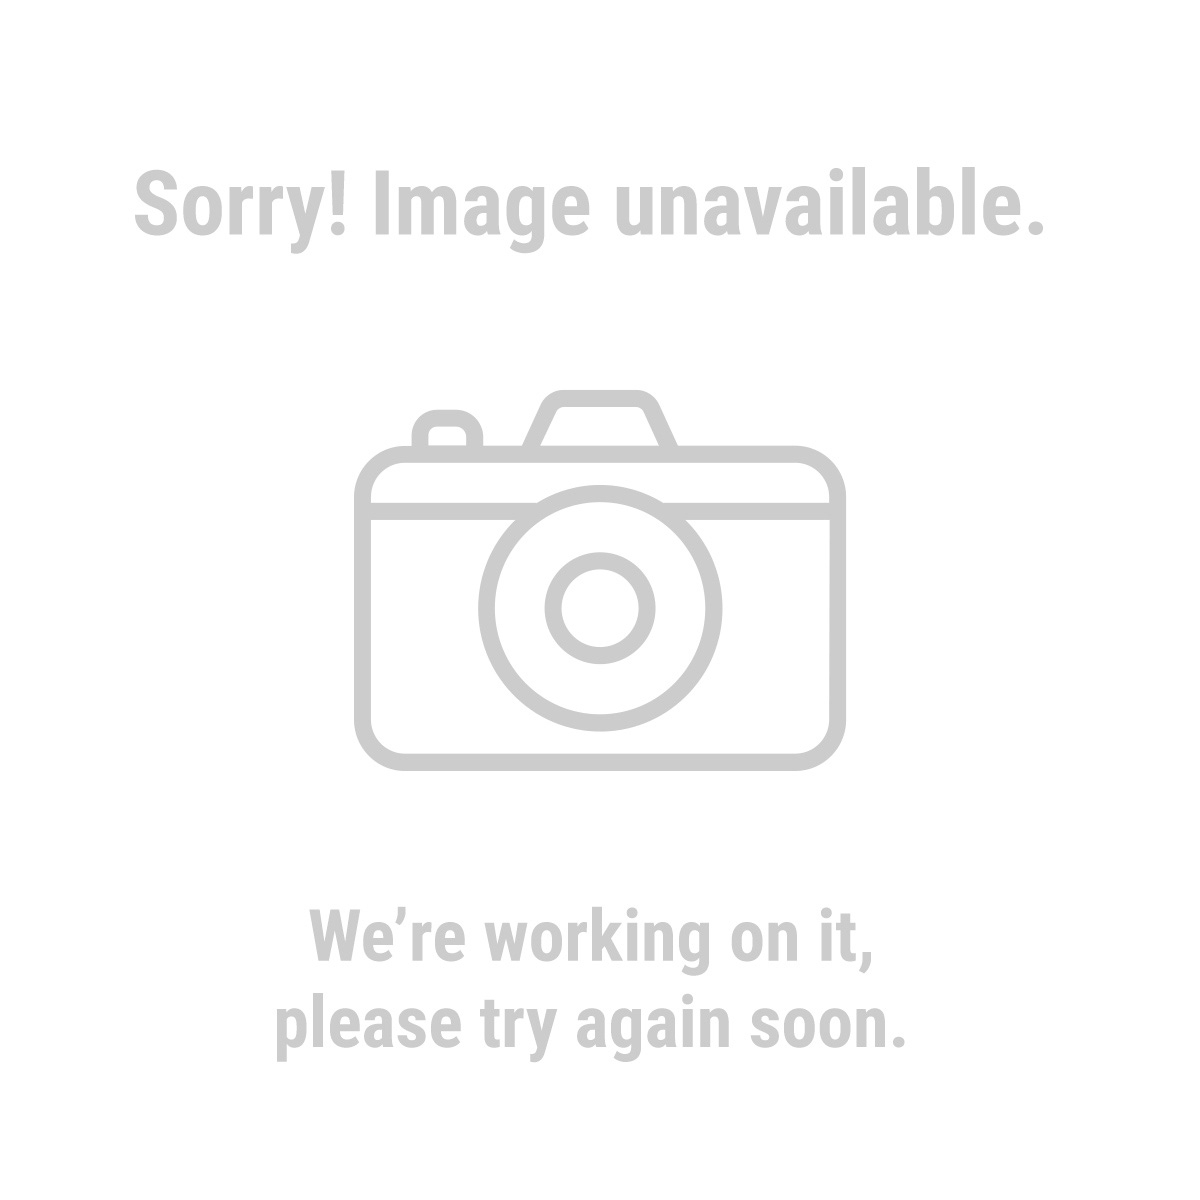 Haul-Master® 63034 36 In. x 24 In. Polypropylene Industrial Service Cart